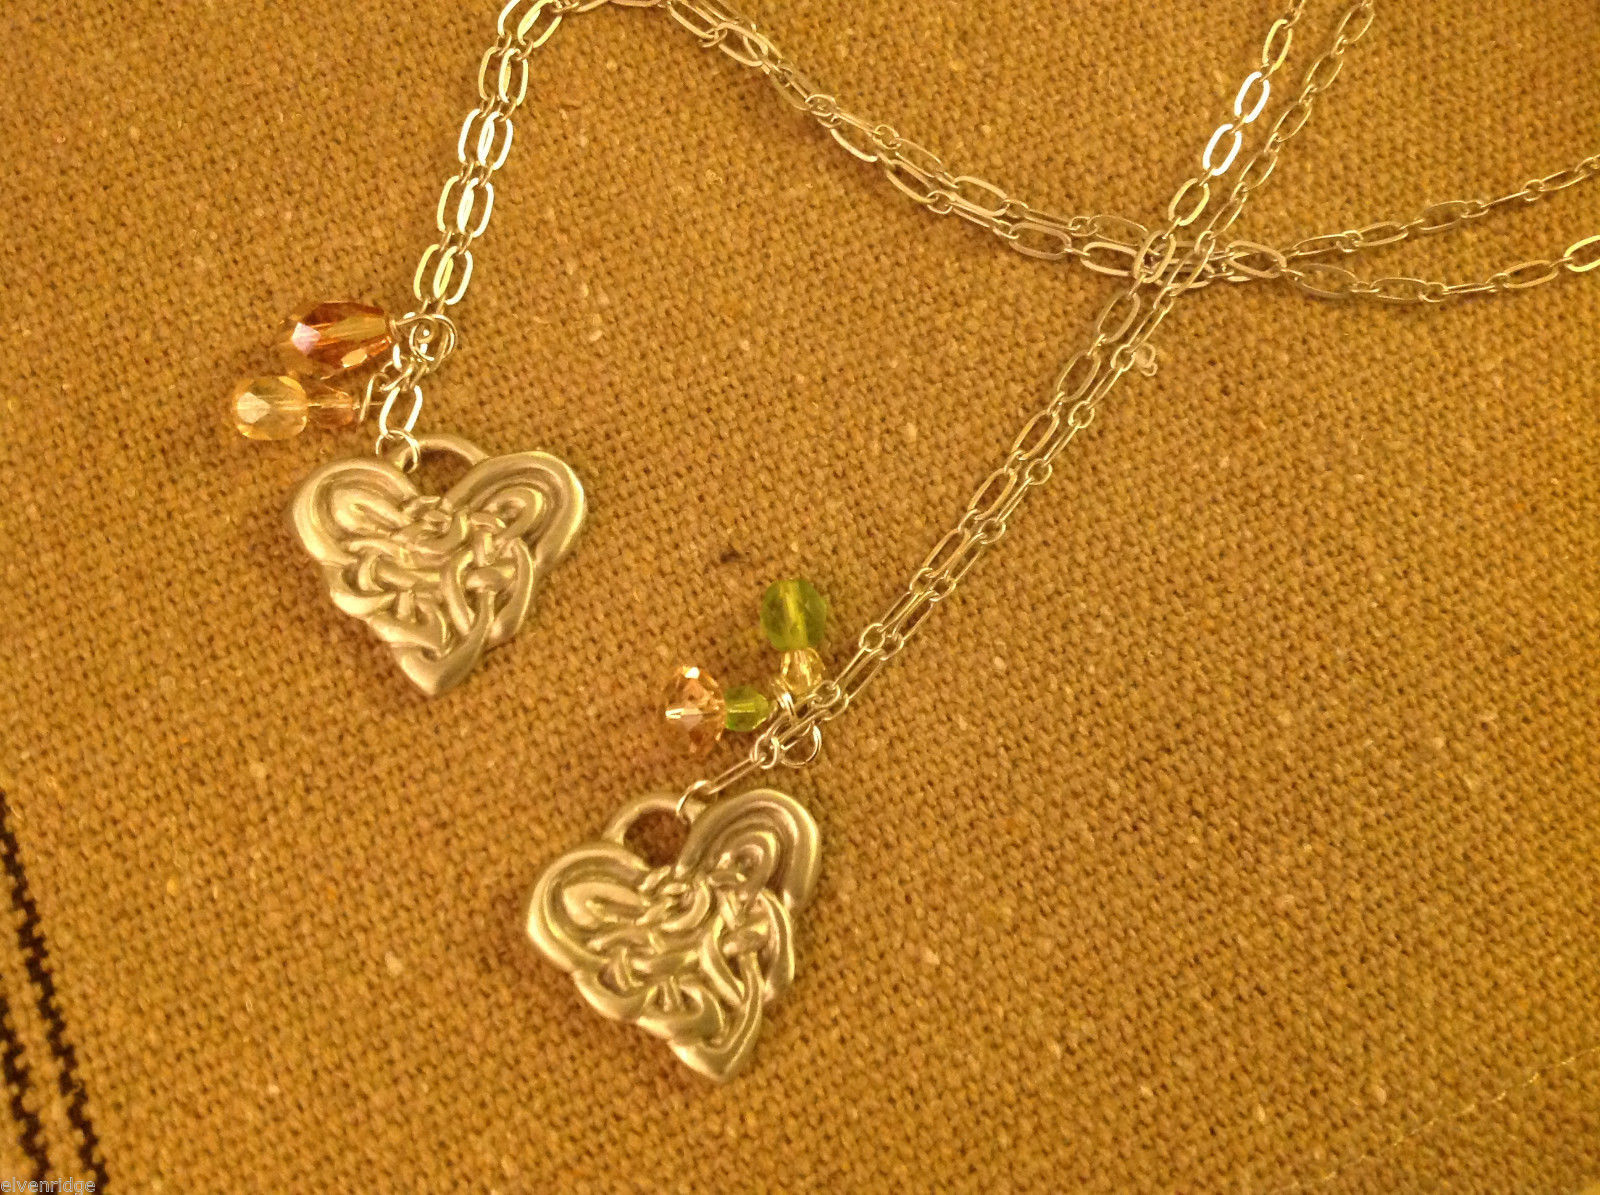 Cynthia Webb pewter necklace USA artist heart celtic design